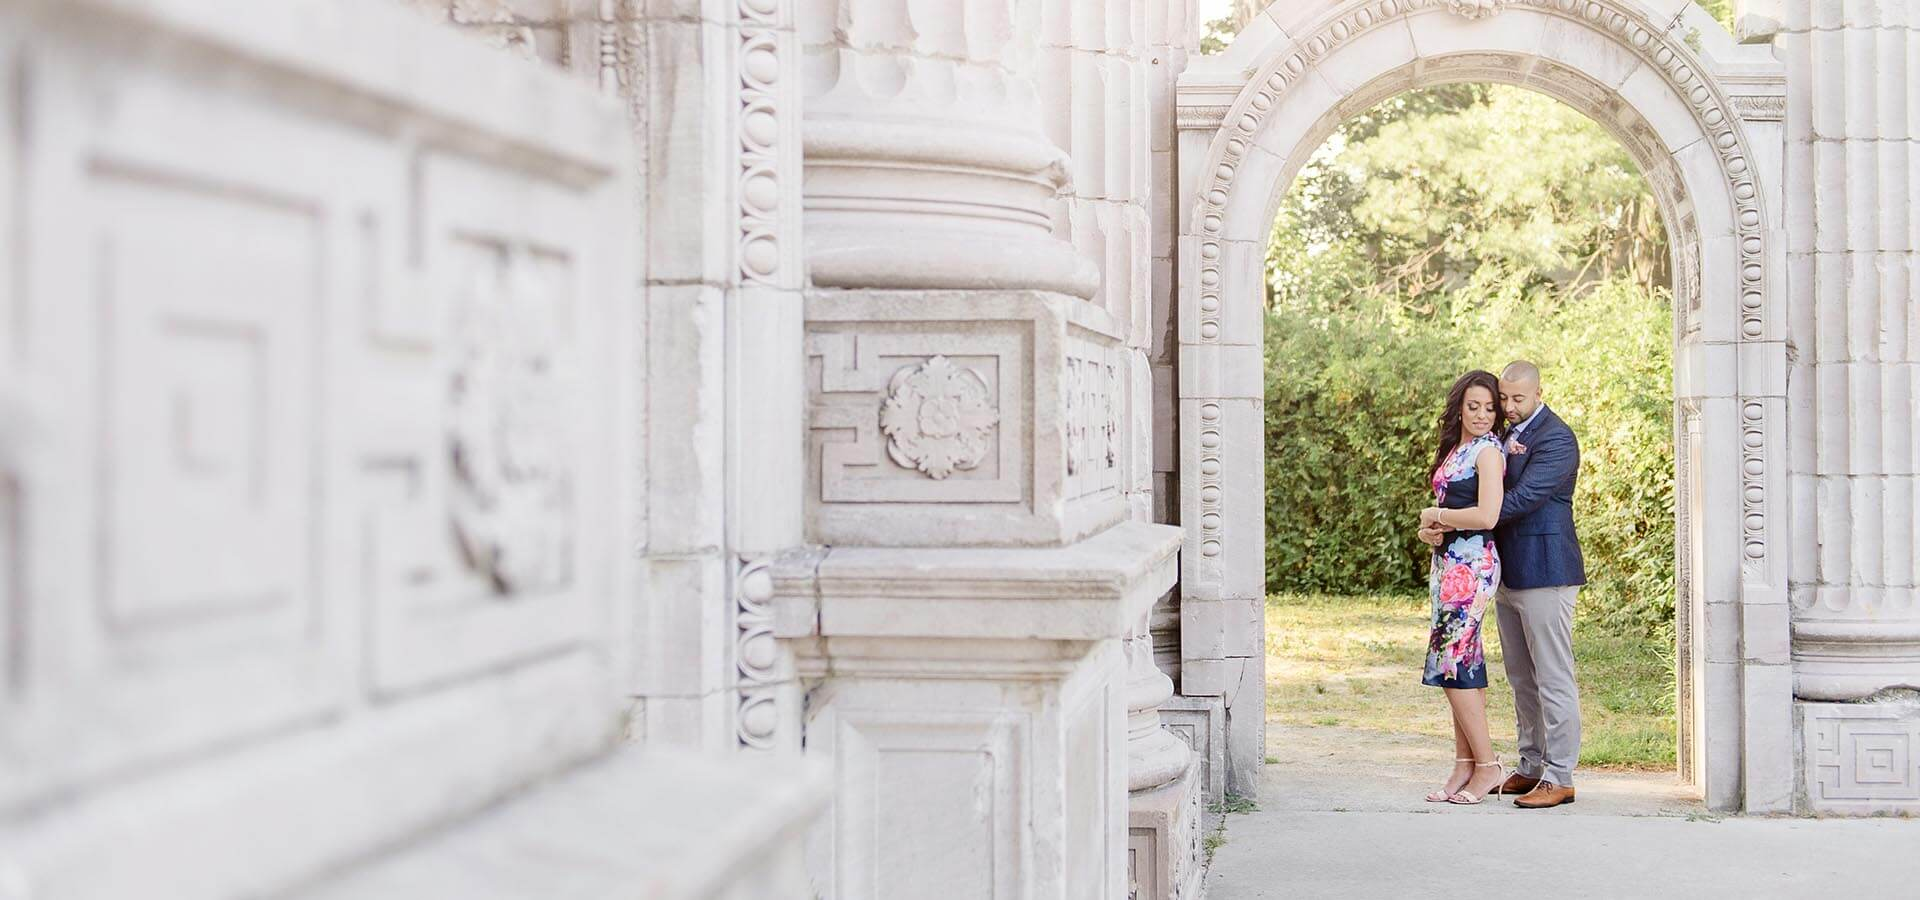 Hero image for Toronto Wedding Photographers Share Their Favourite Locations For Engagement Photography in the GTA